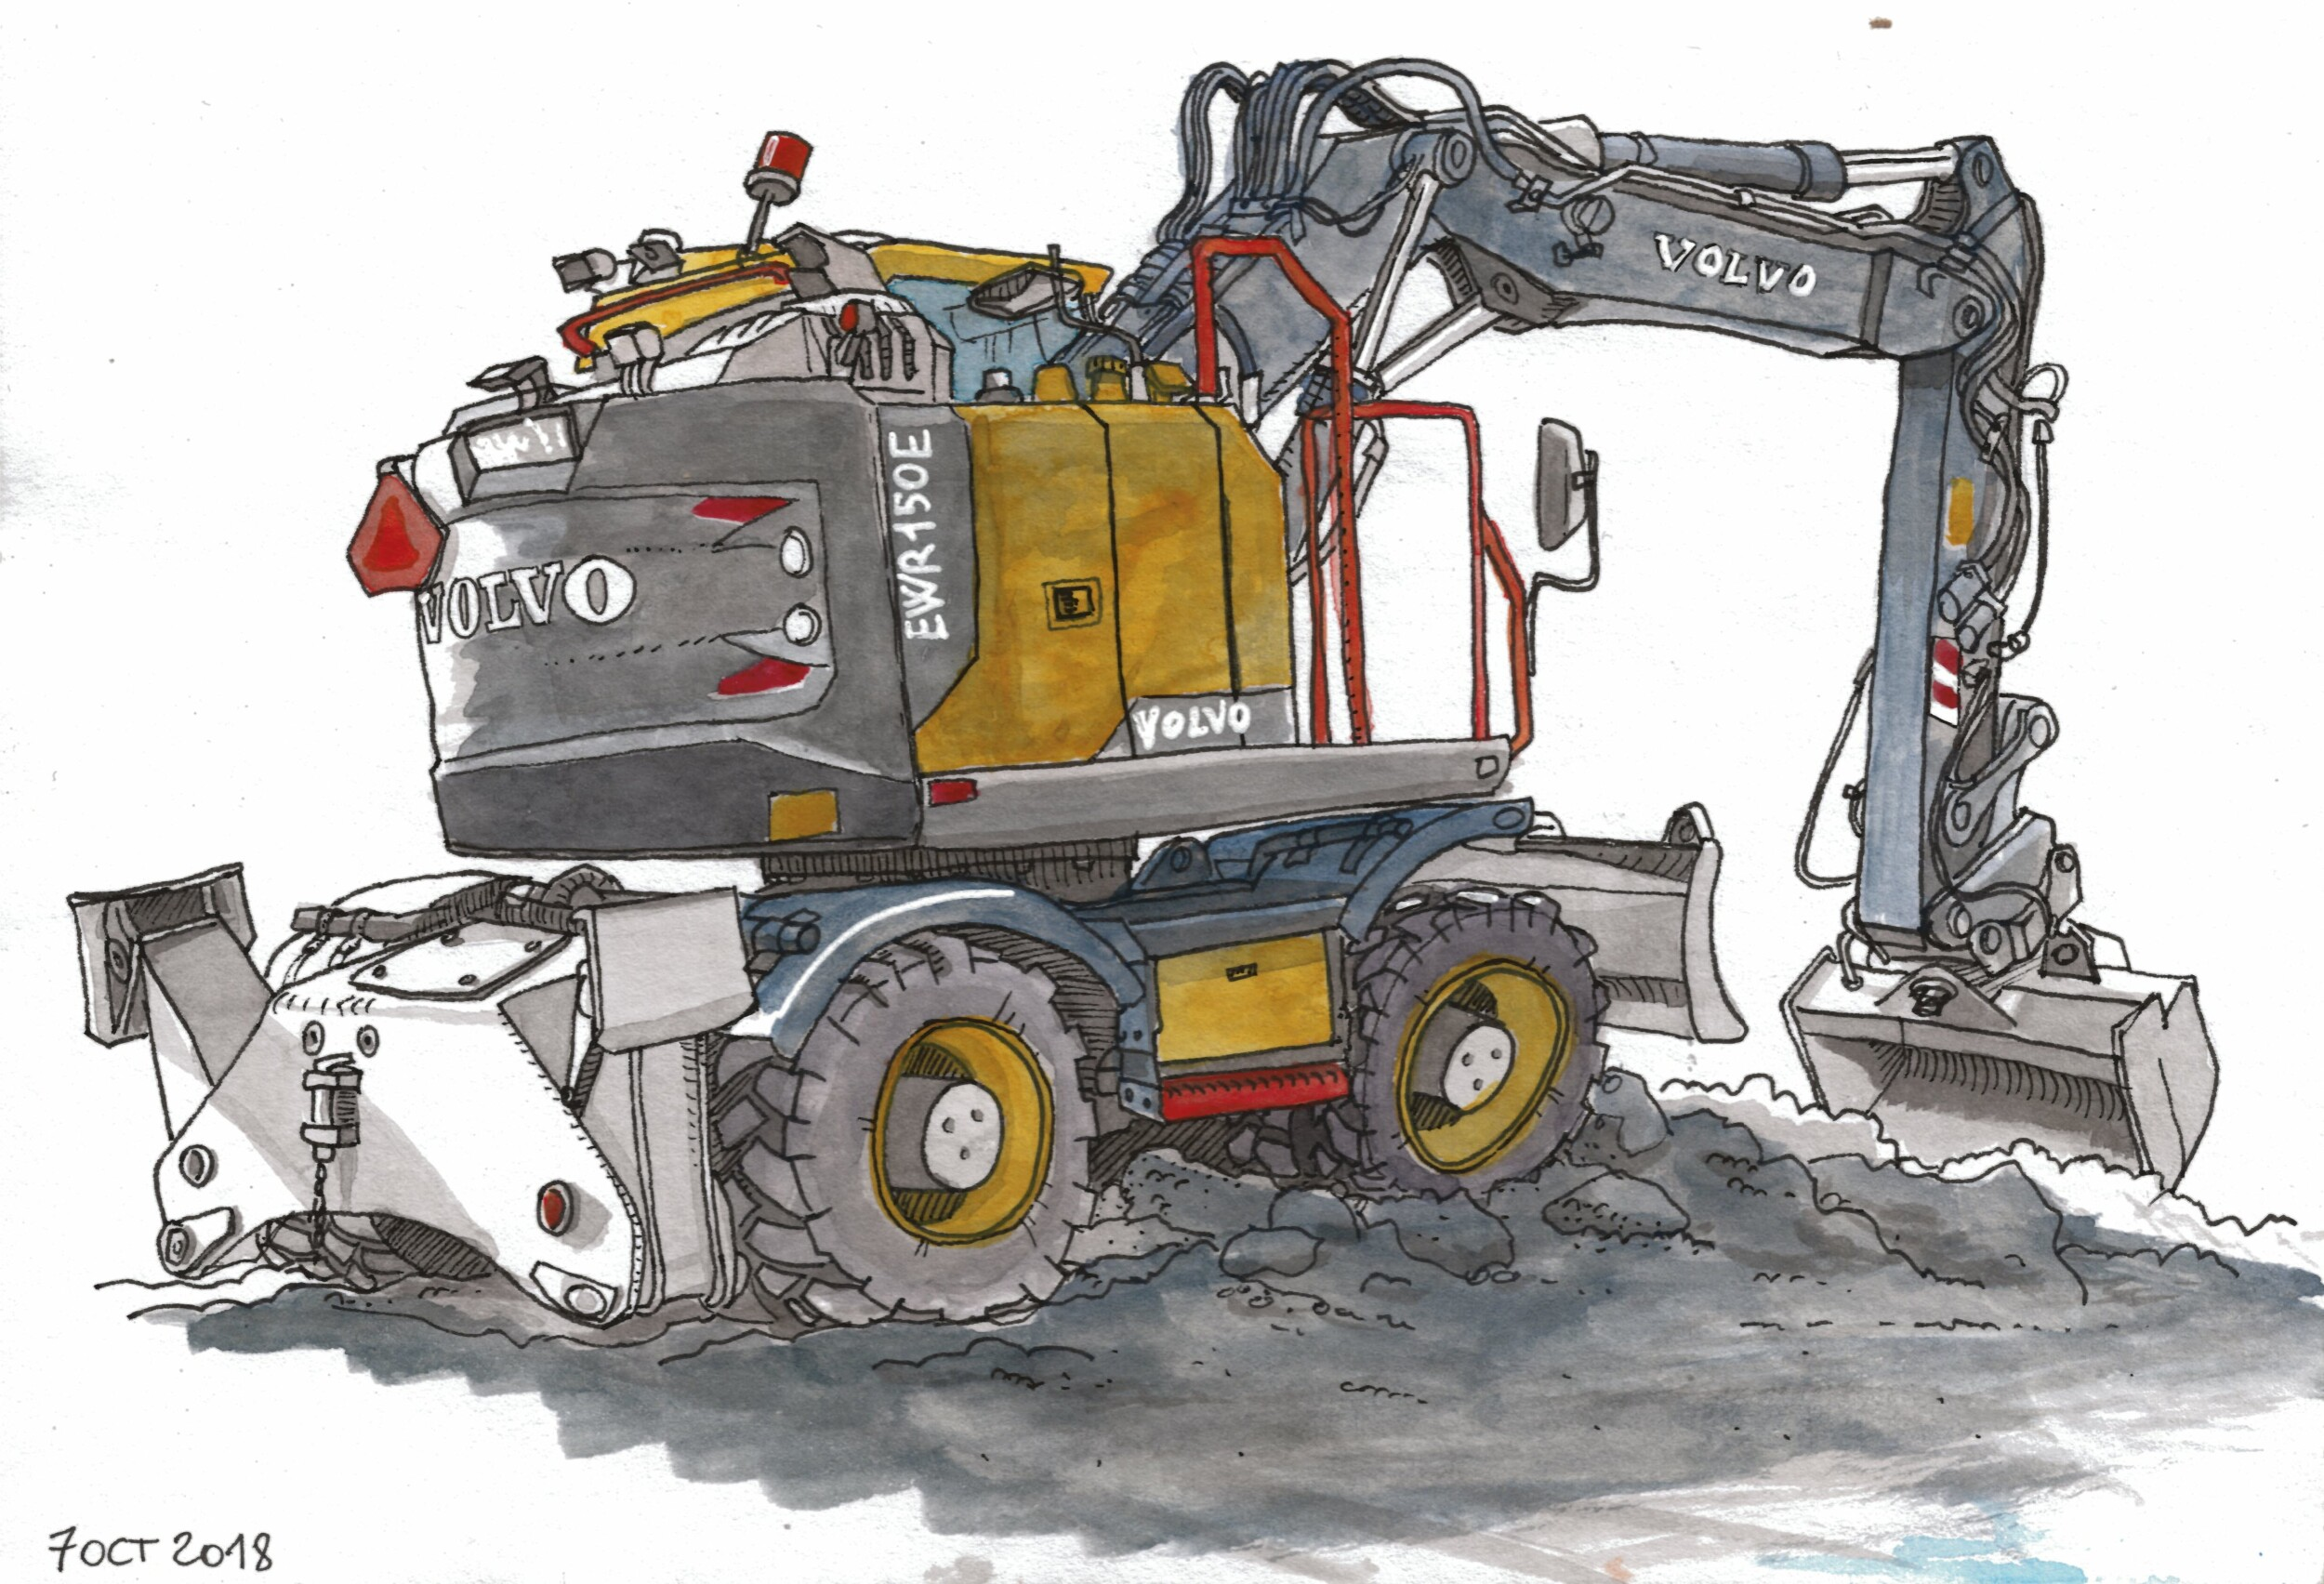 There were streetworks on the street under our windows. I sketched this excavator on a Sunday afternoon while it was parked.